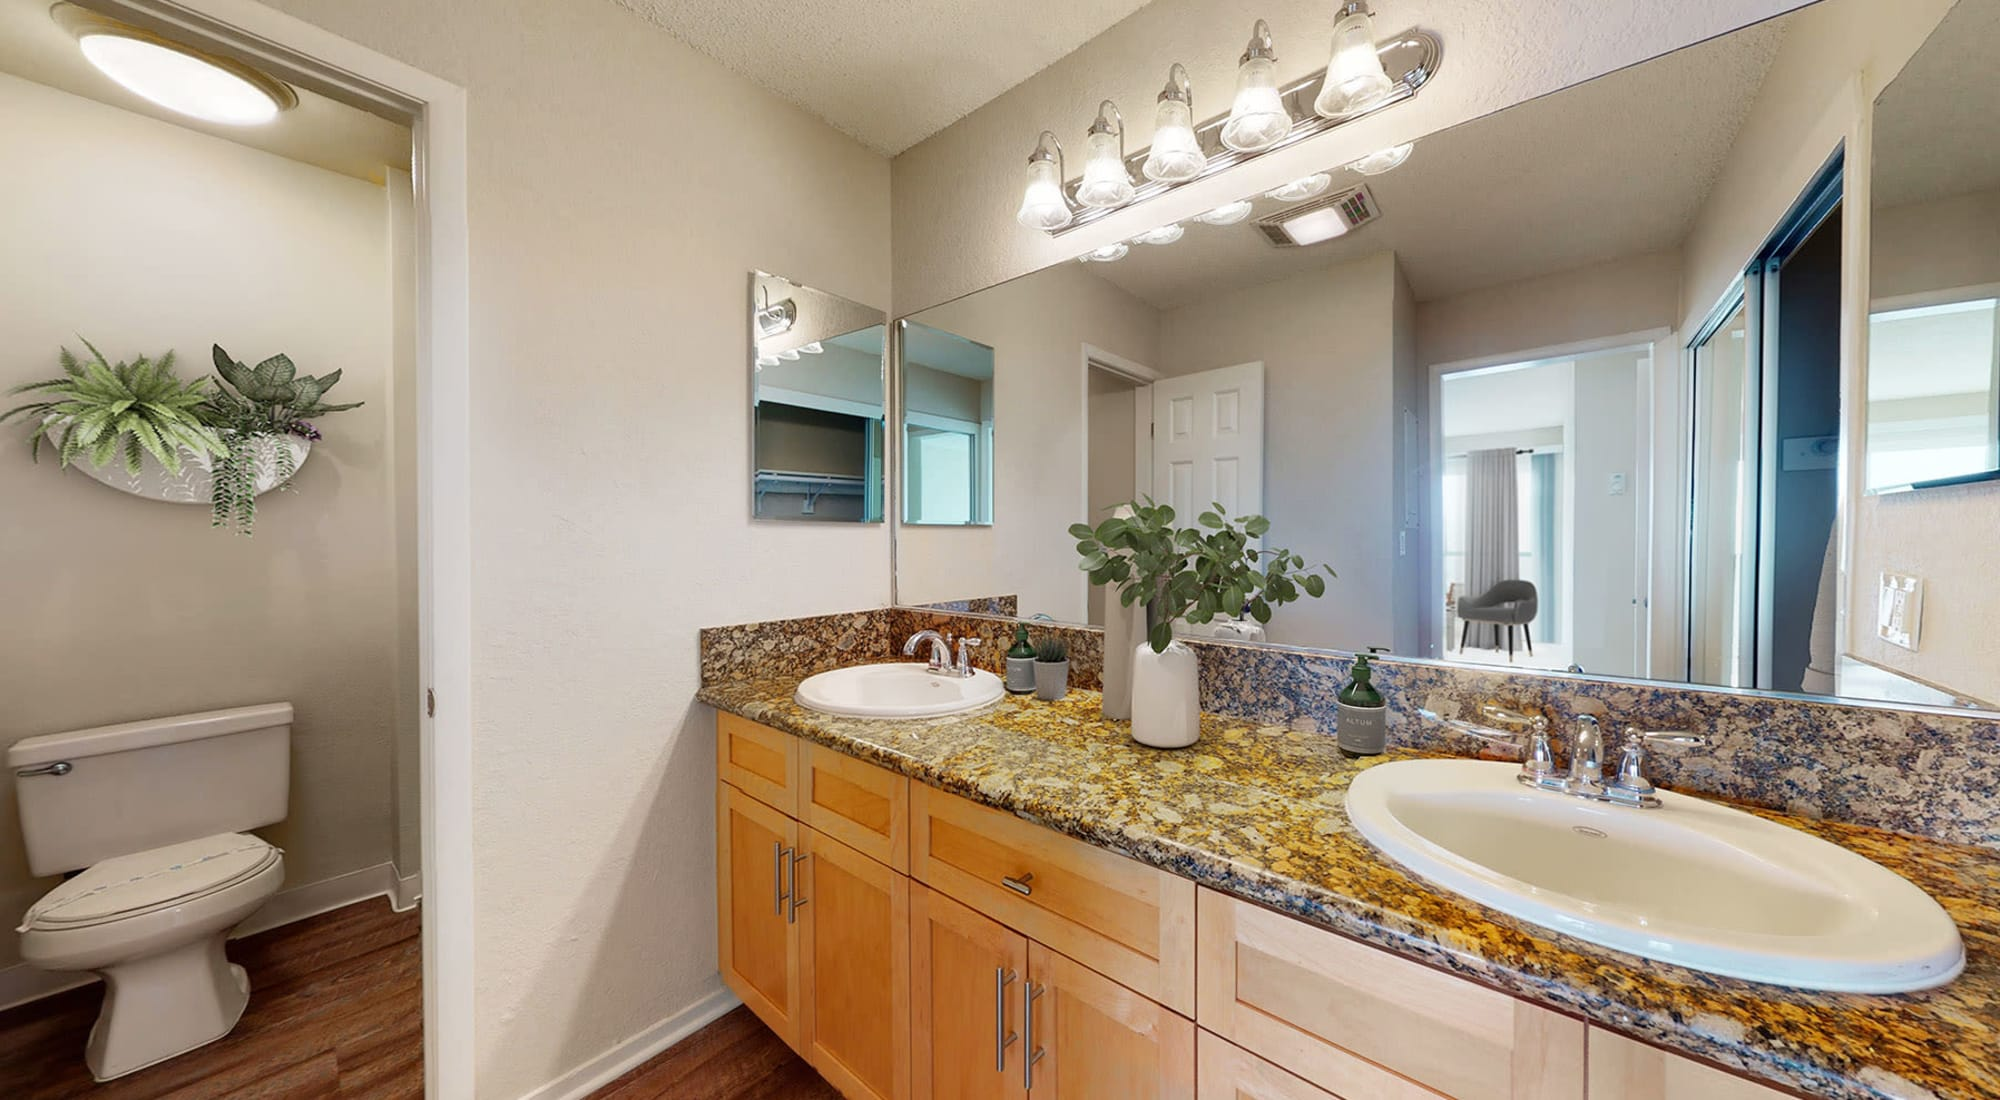 Bathroom with granite countertops and double sink in a spacious apartment home at The Tides at Marina Harbor in Marina Del Rey, California